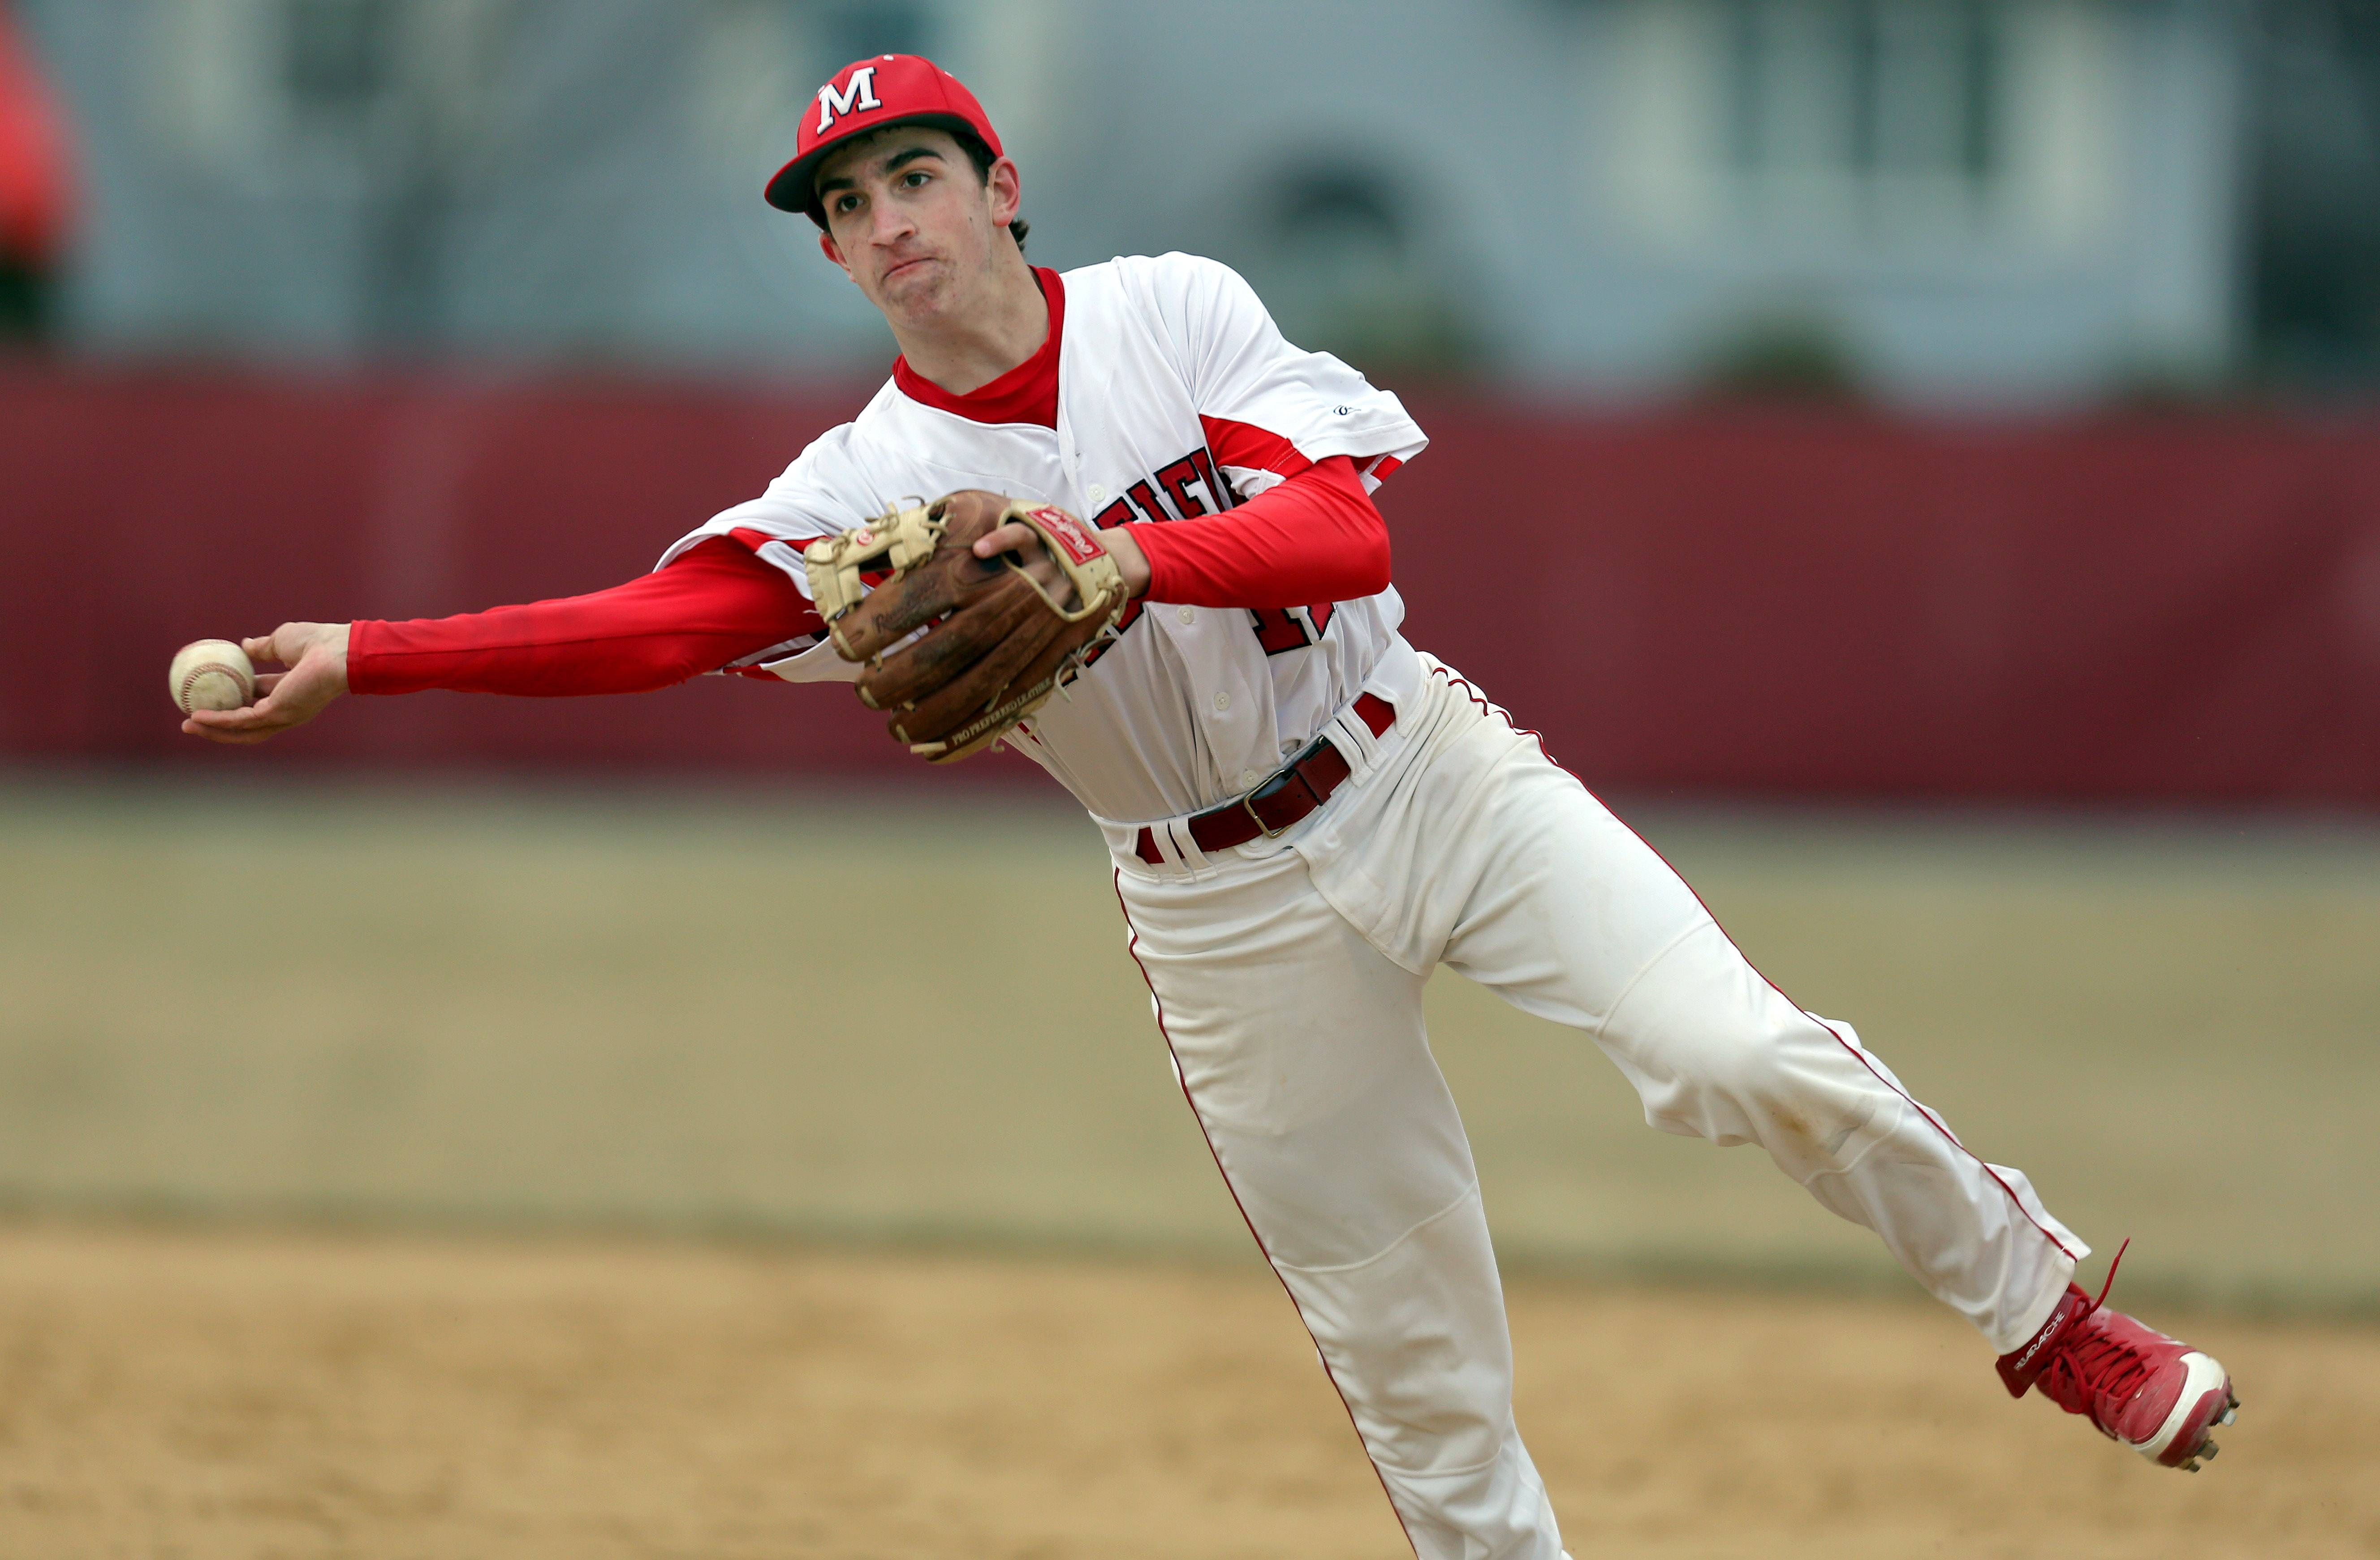 Mundelein's Wes Farmer throws to first against Wheeling on Wednesday at Mundelein.